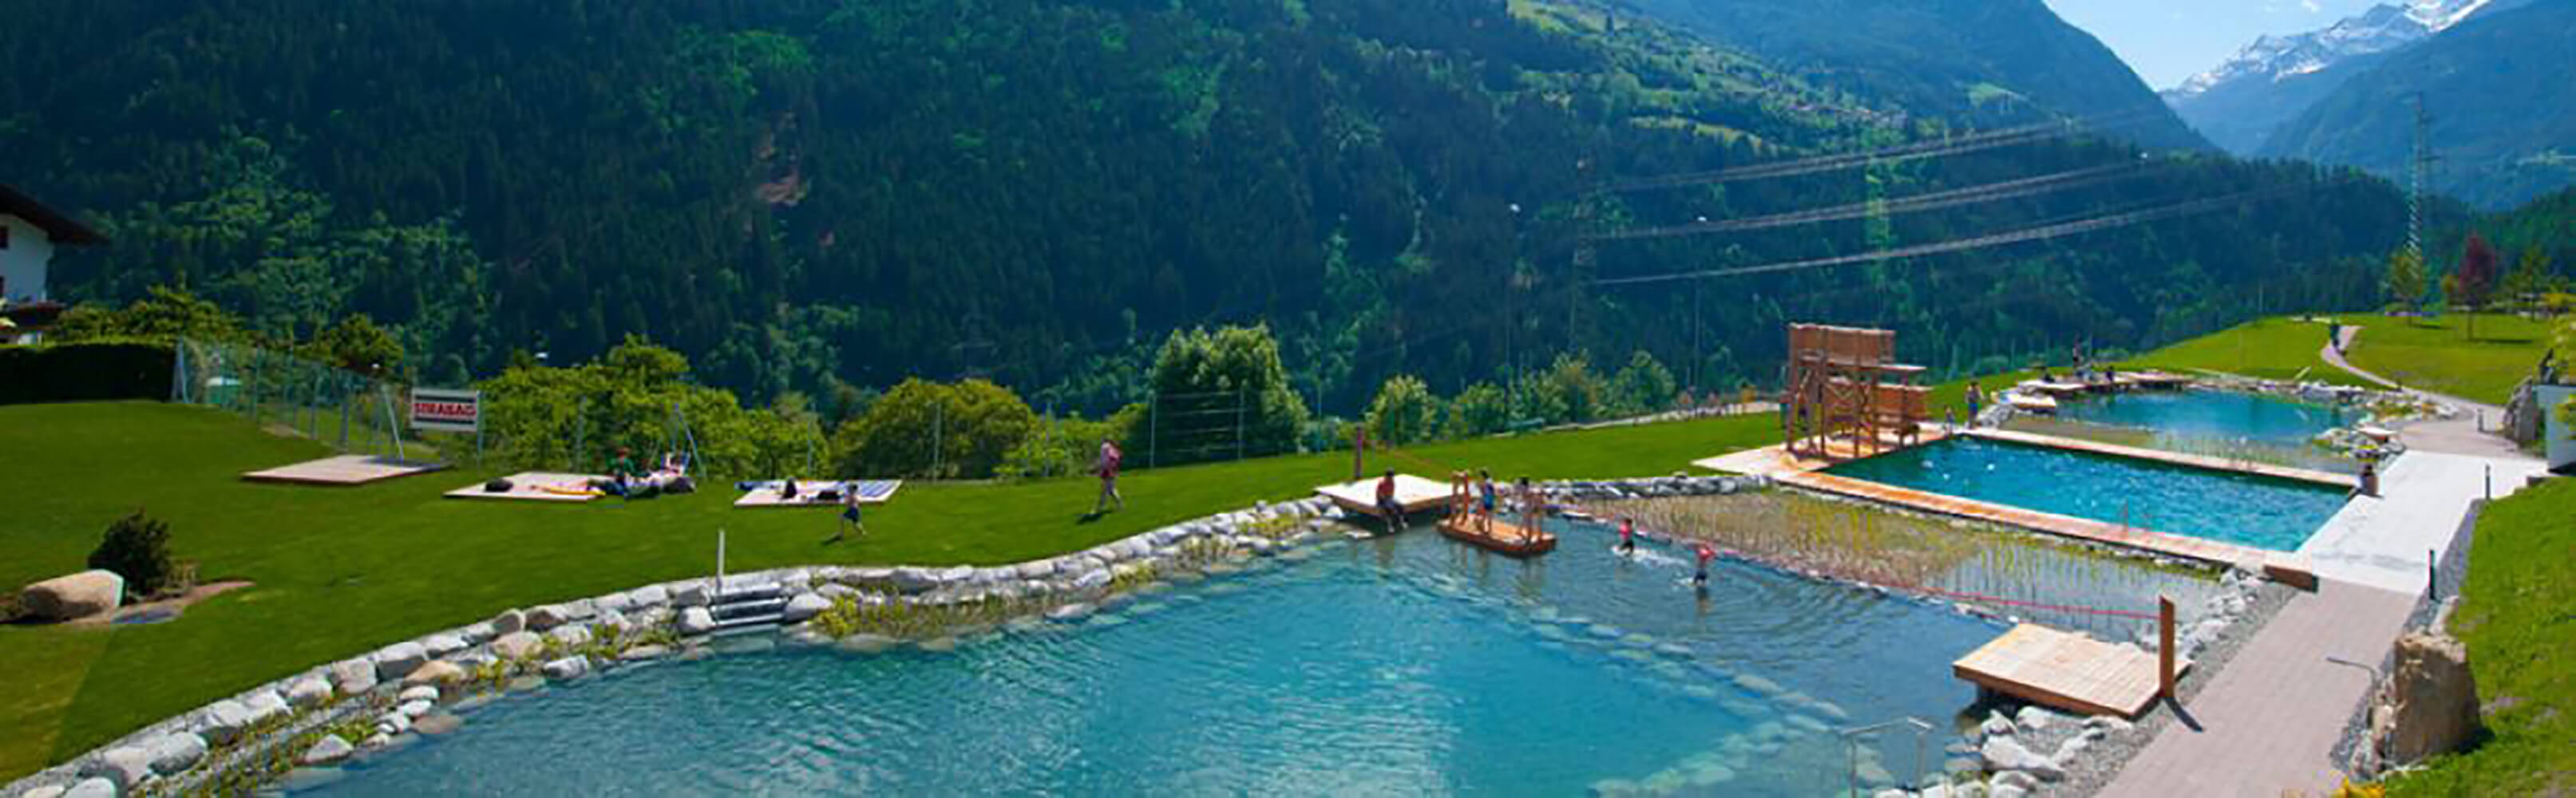 Alpine Wellness in Tirol 1